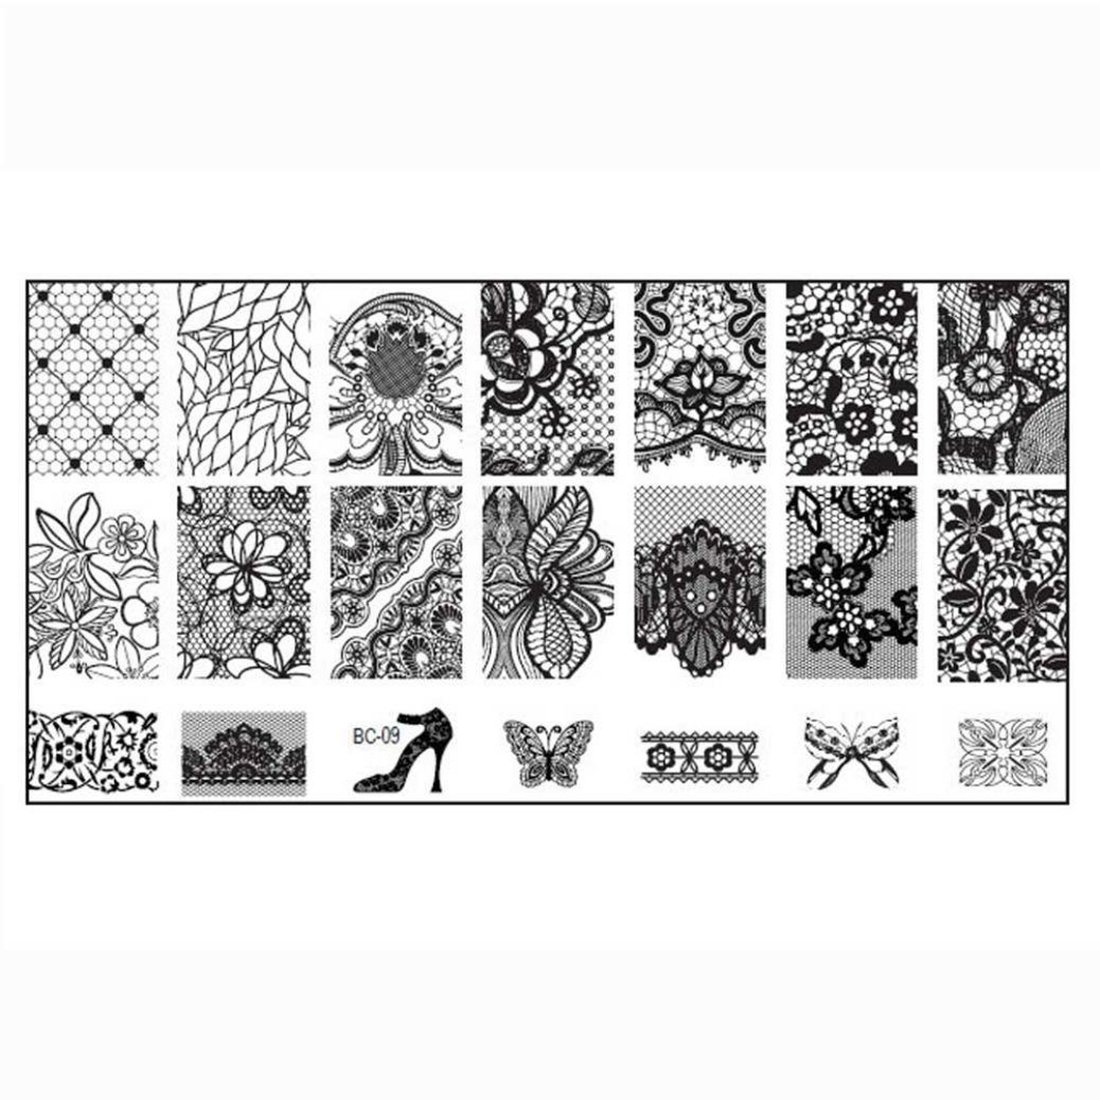 SODIAL(R) Women Nail DIY Nail Print Image Plate Stamped Stamp Art Template BC05 #